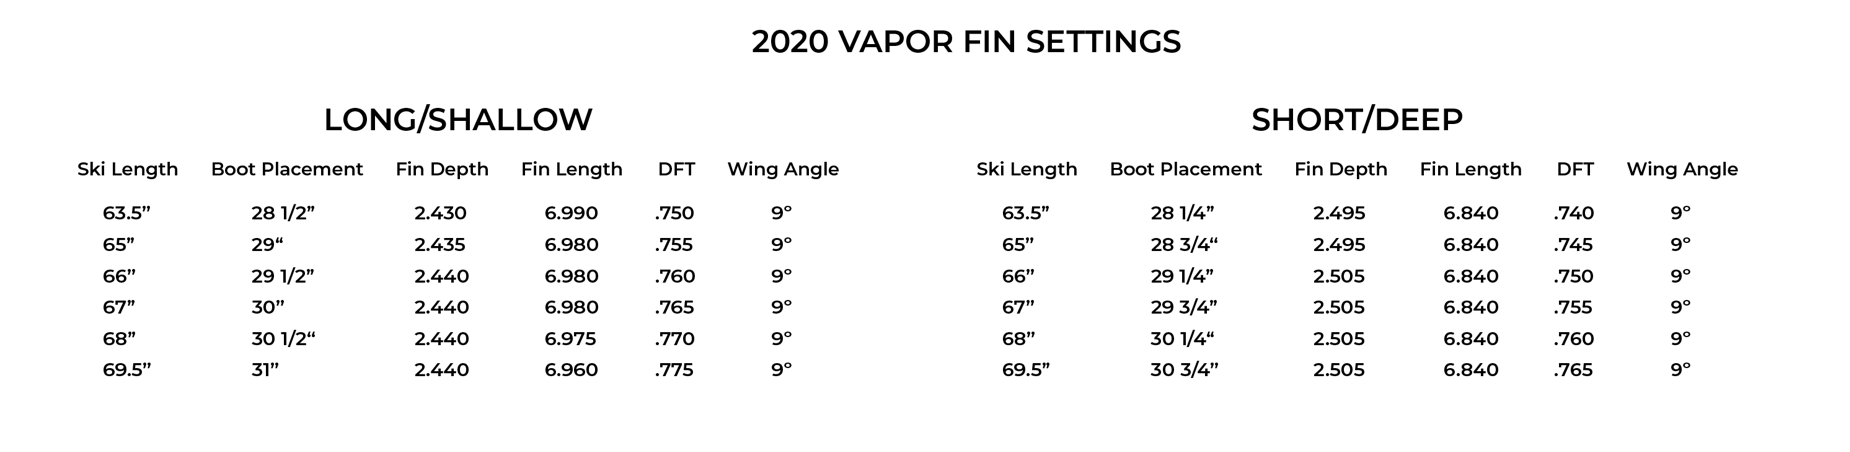 Radar Vapor Pro Build Waterski | 2020